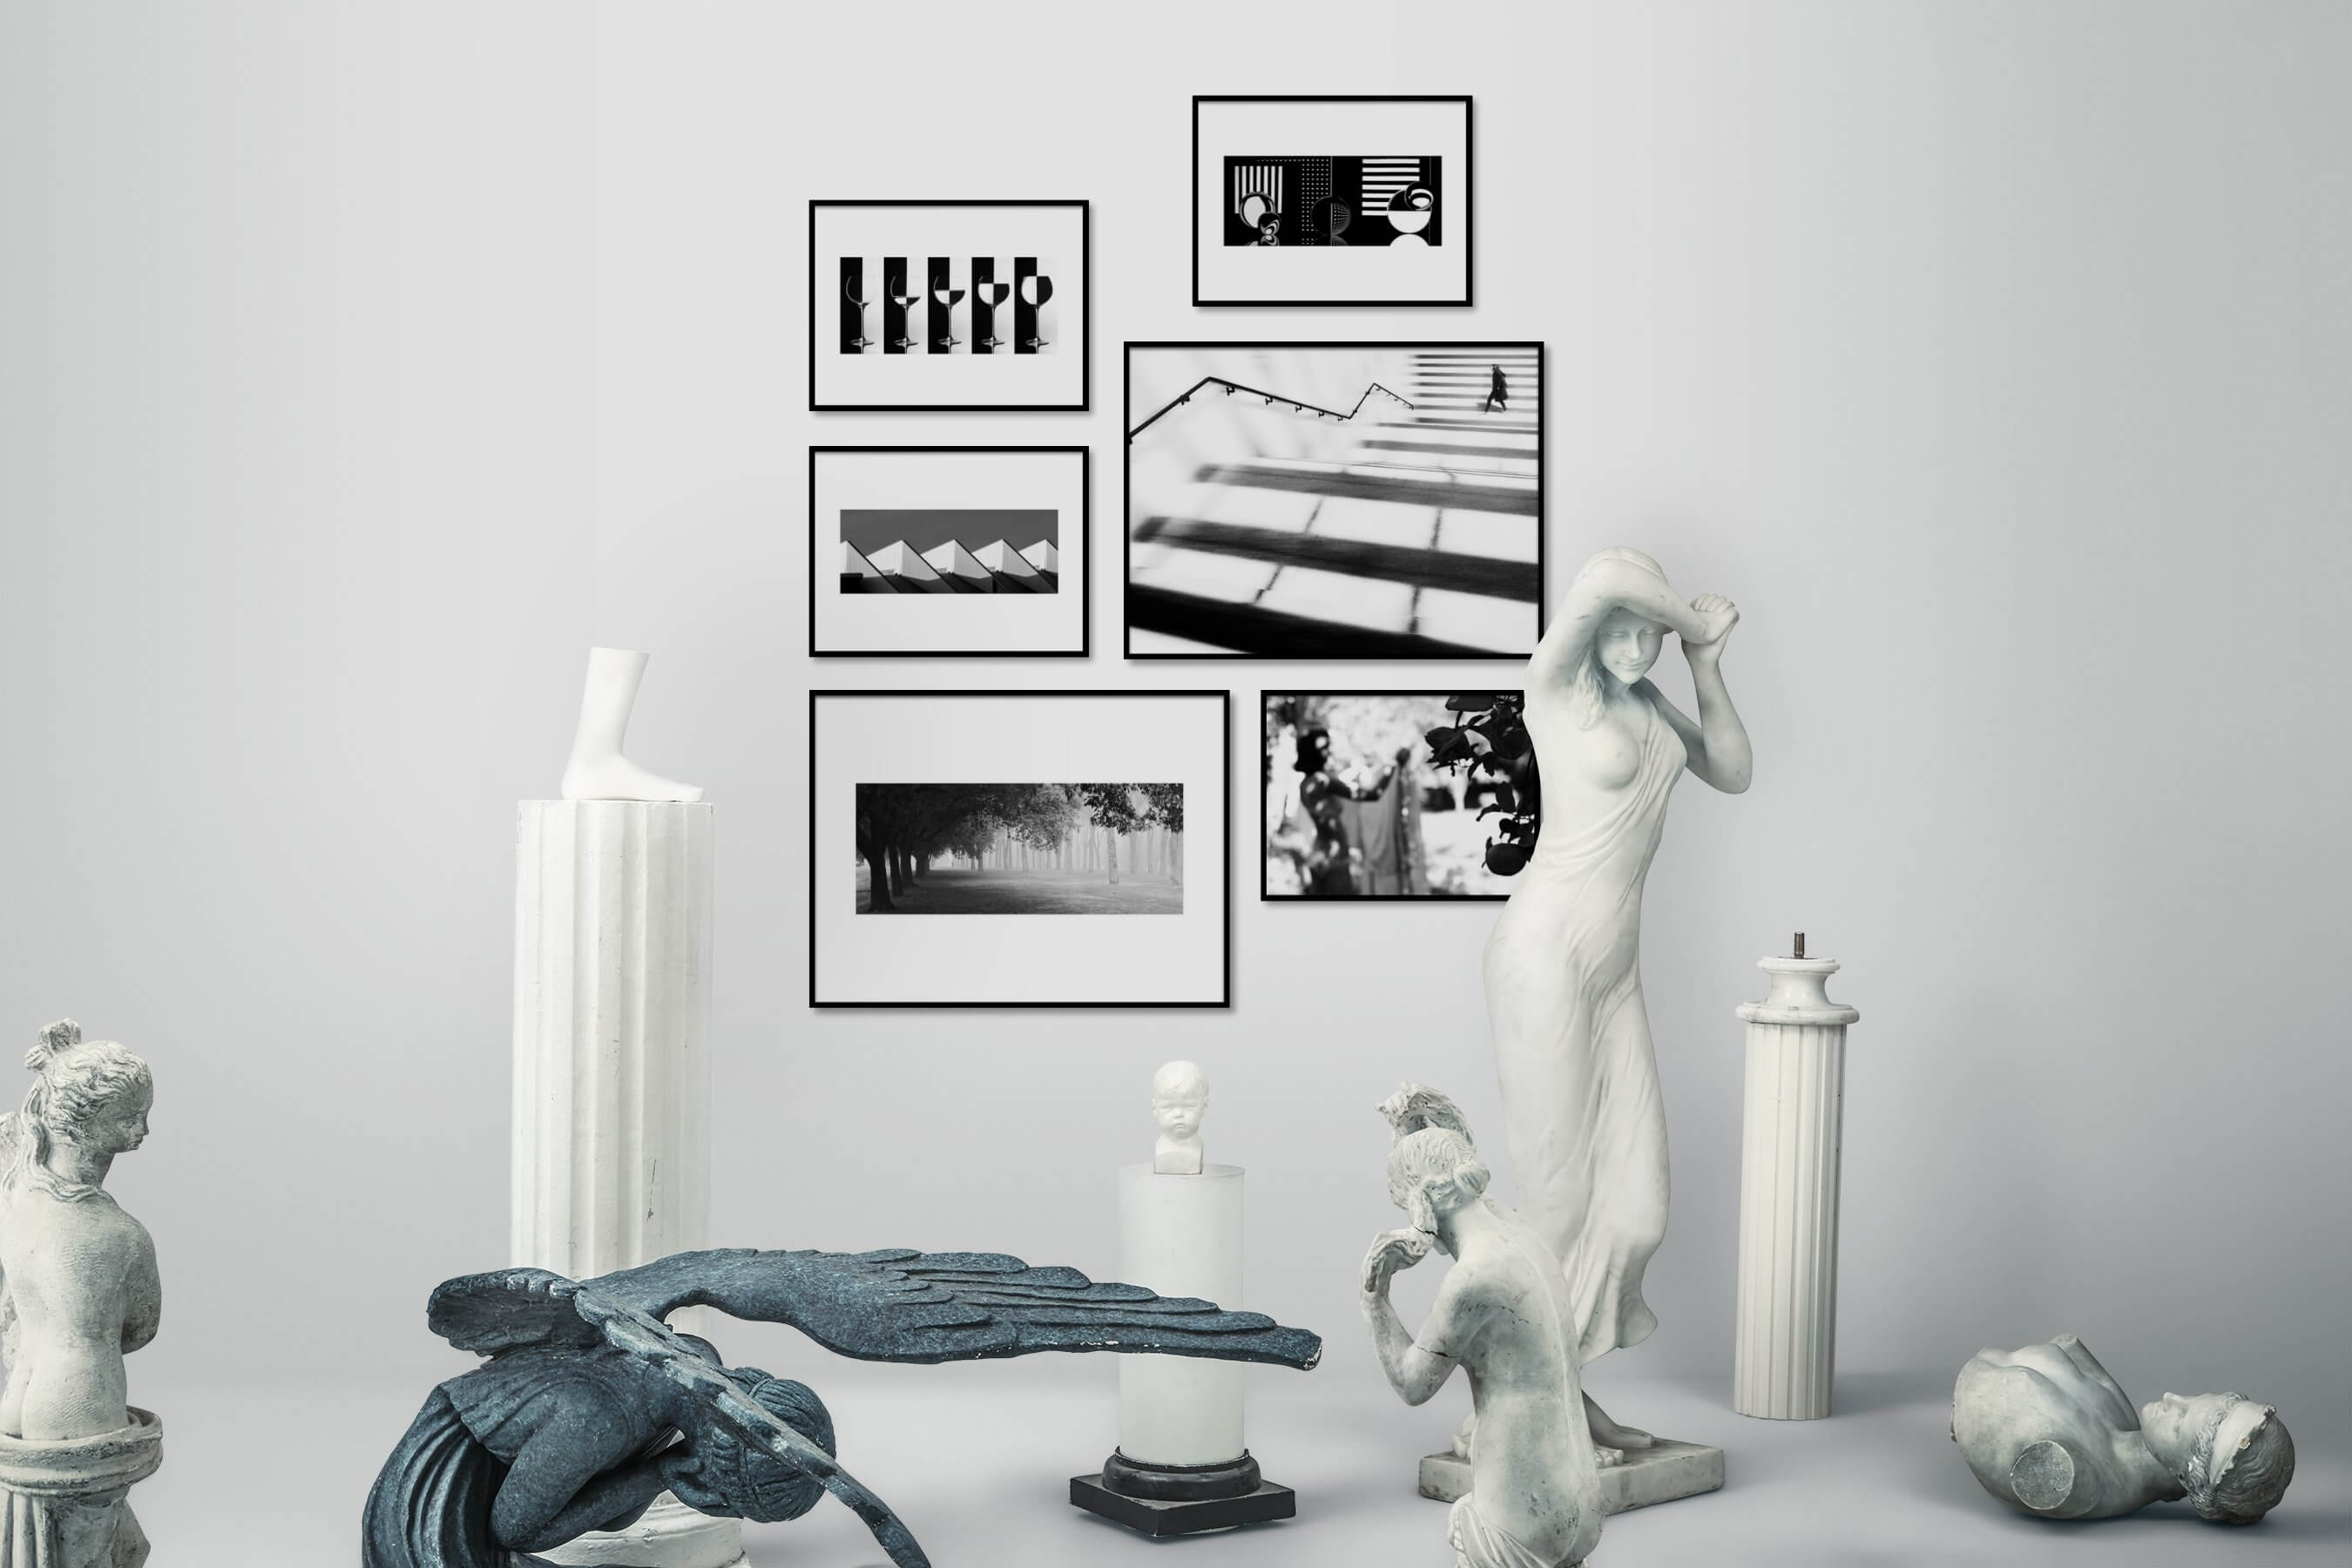 Gallery wall idea with six framed pictures arranged on a wall depicting Black & White, For the Moderate, For the Minimalist, City Life, Nature, Mindfulness, Flowers & Plants, and Country Life